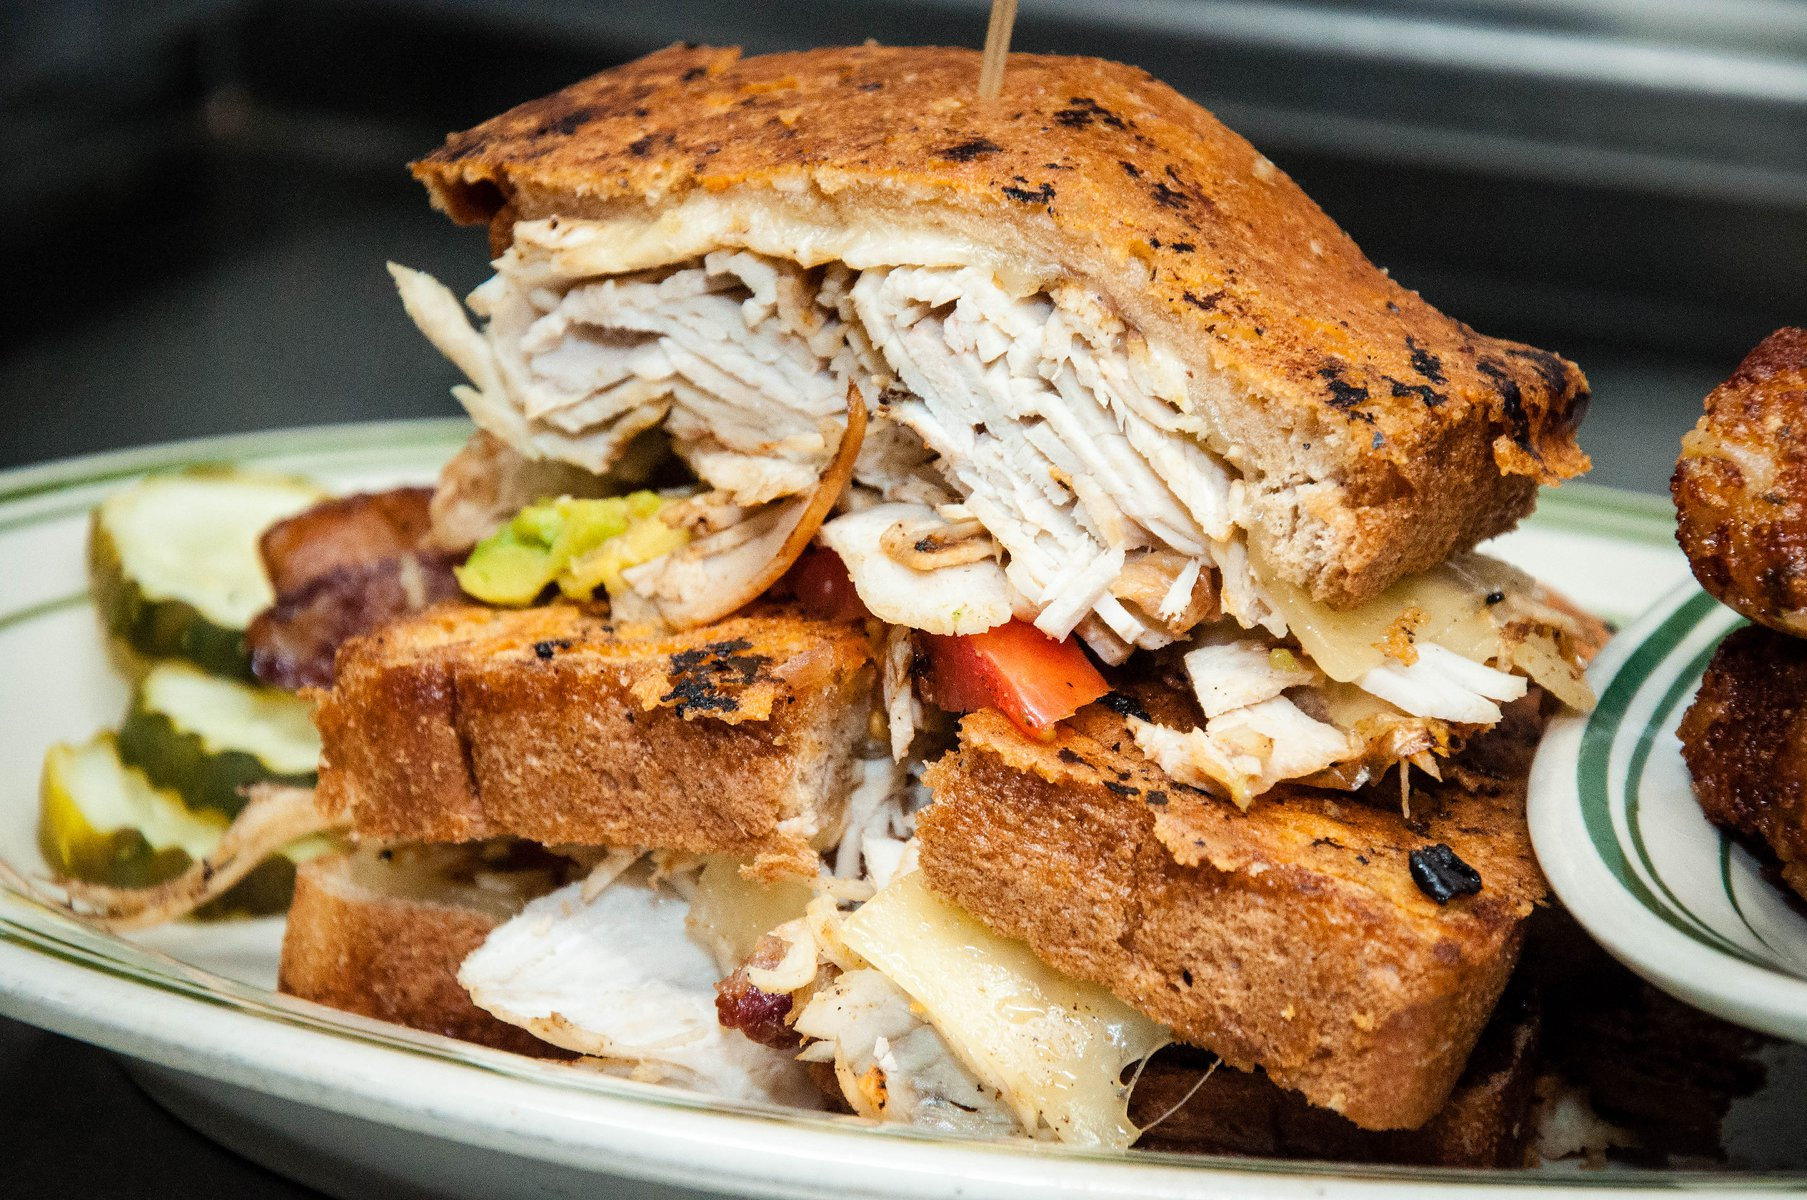 Turkey sandwich with vegetables